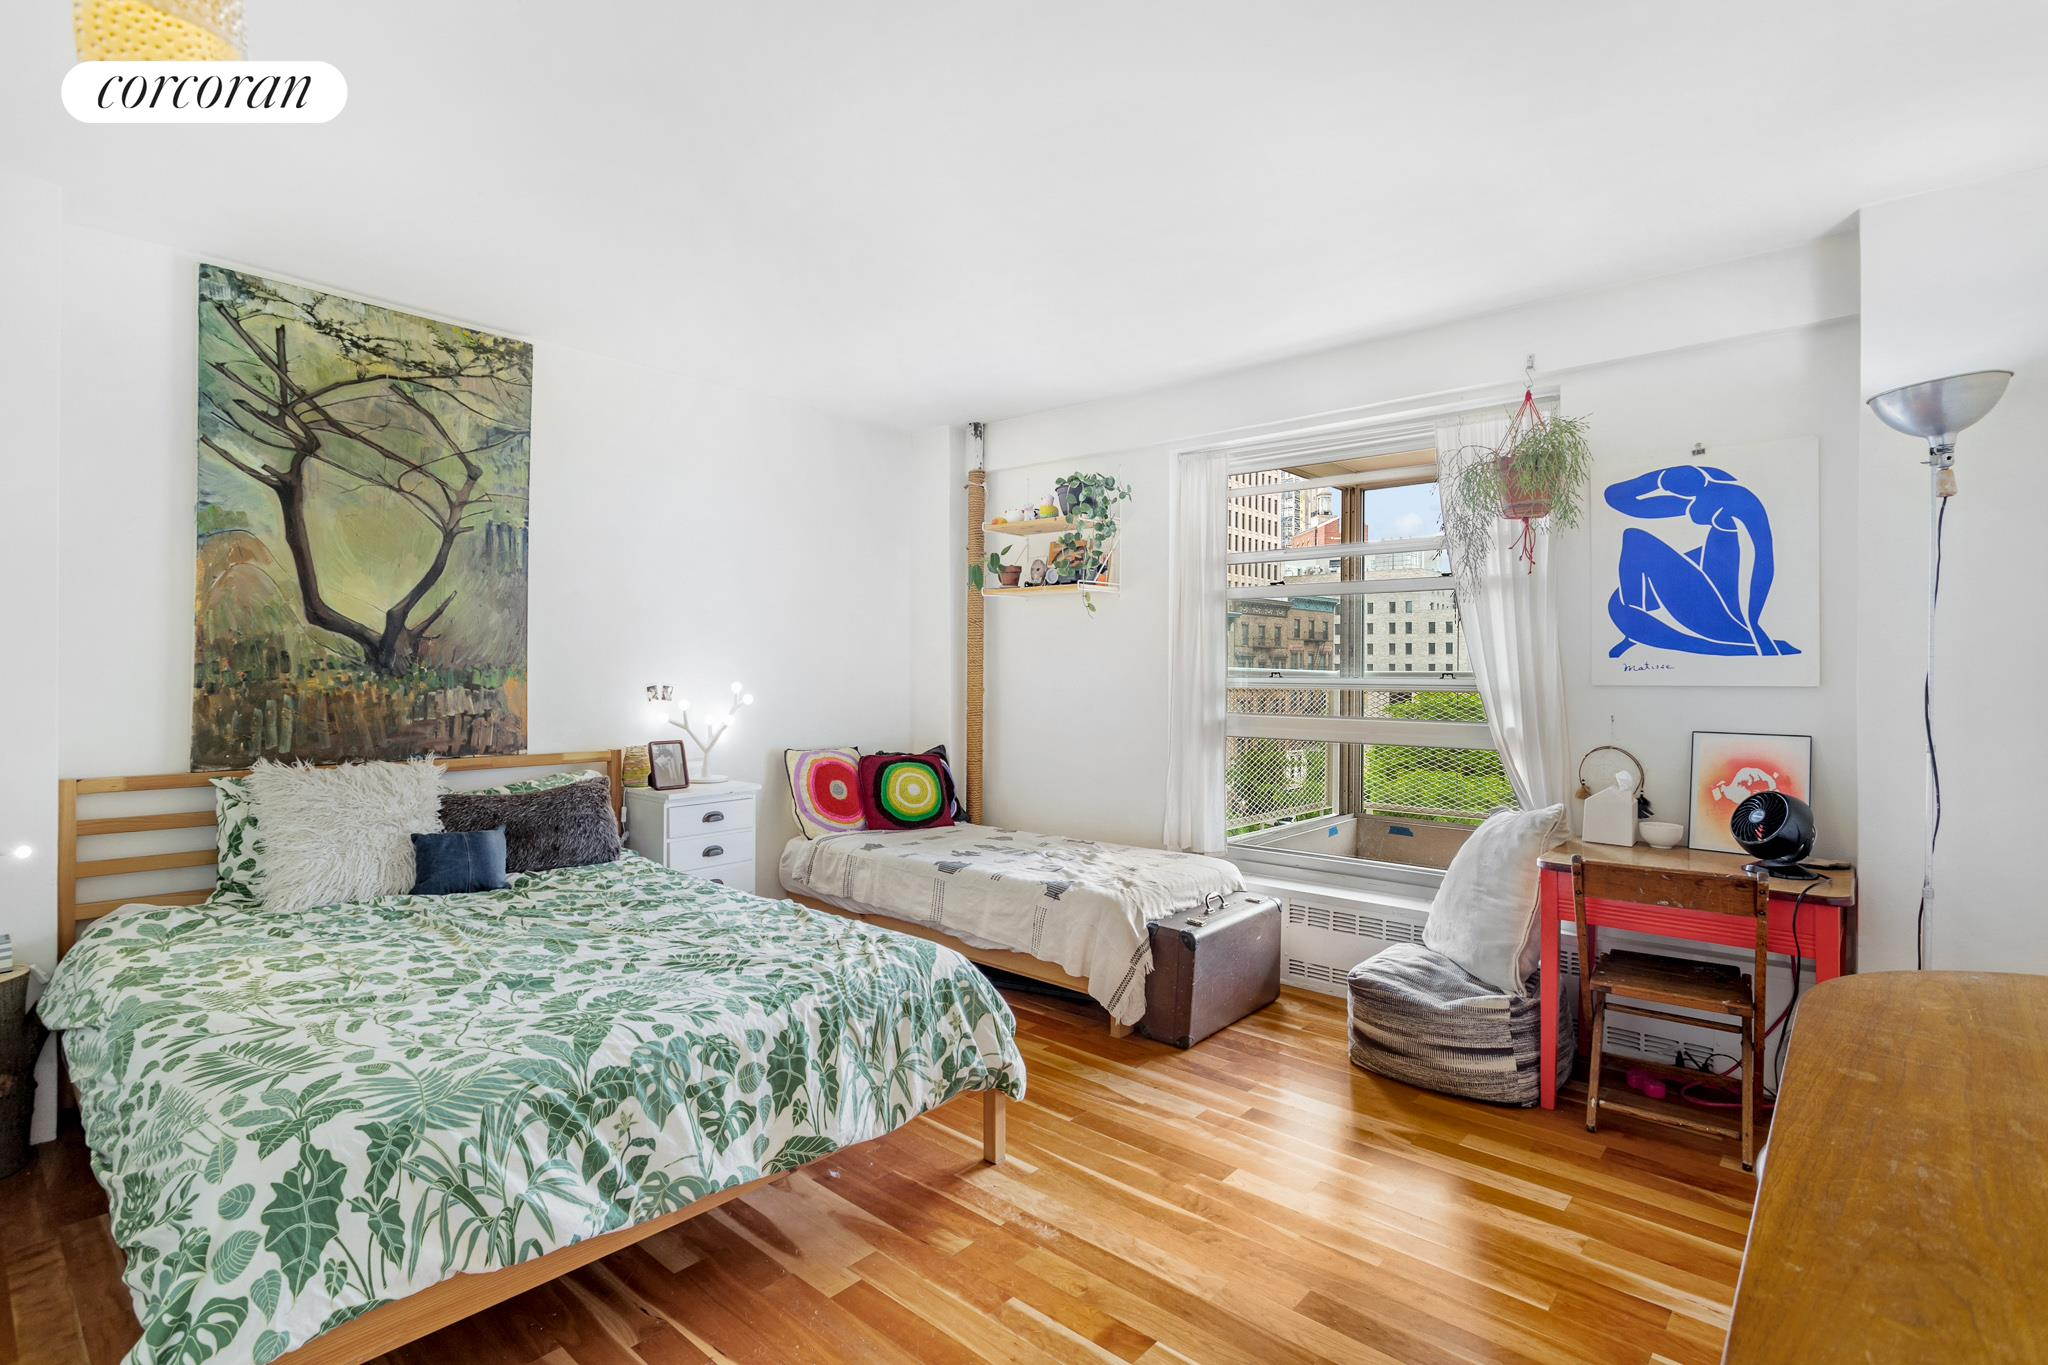 501 West 123rd Street Morningside Heights New York NY 10027